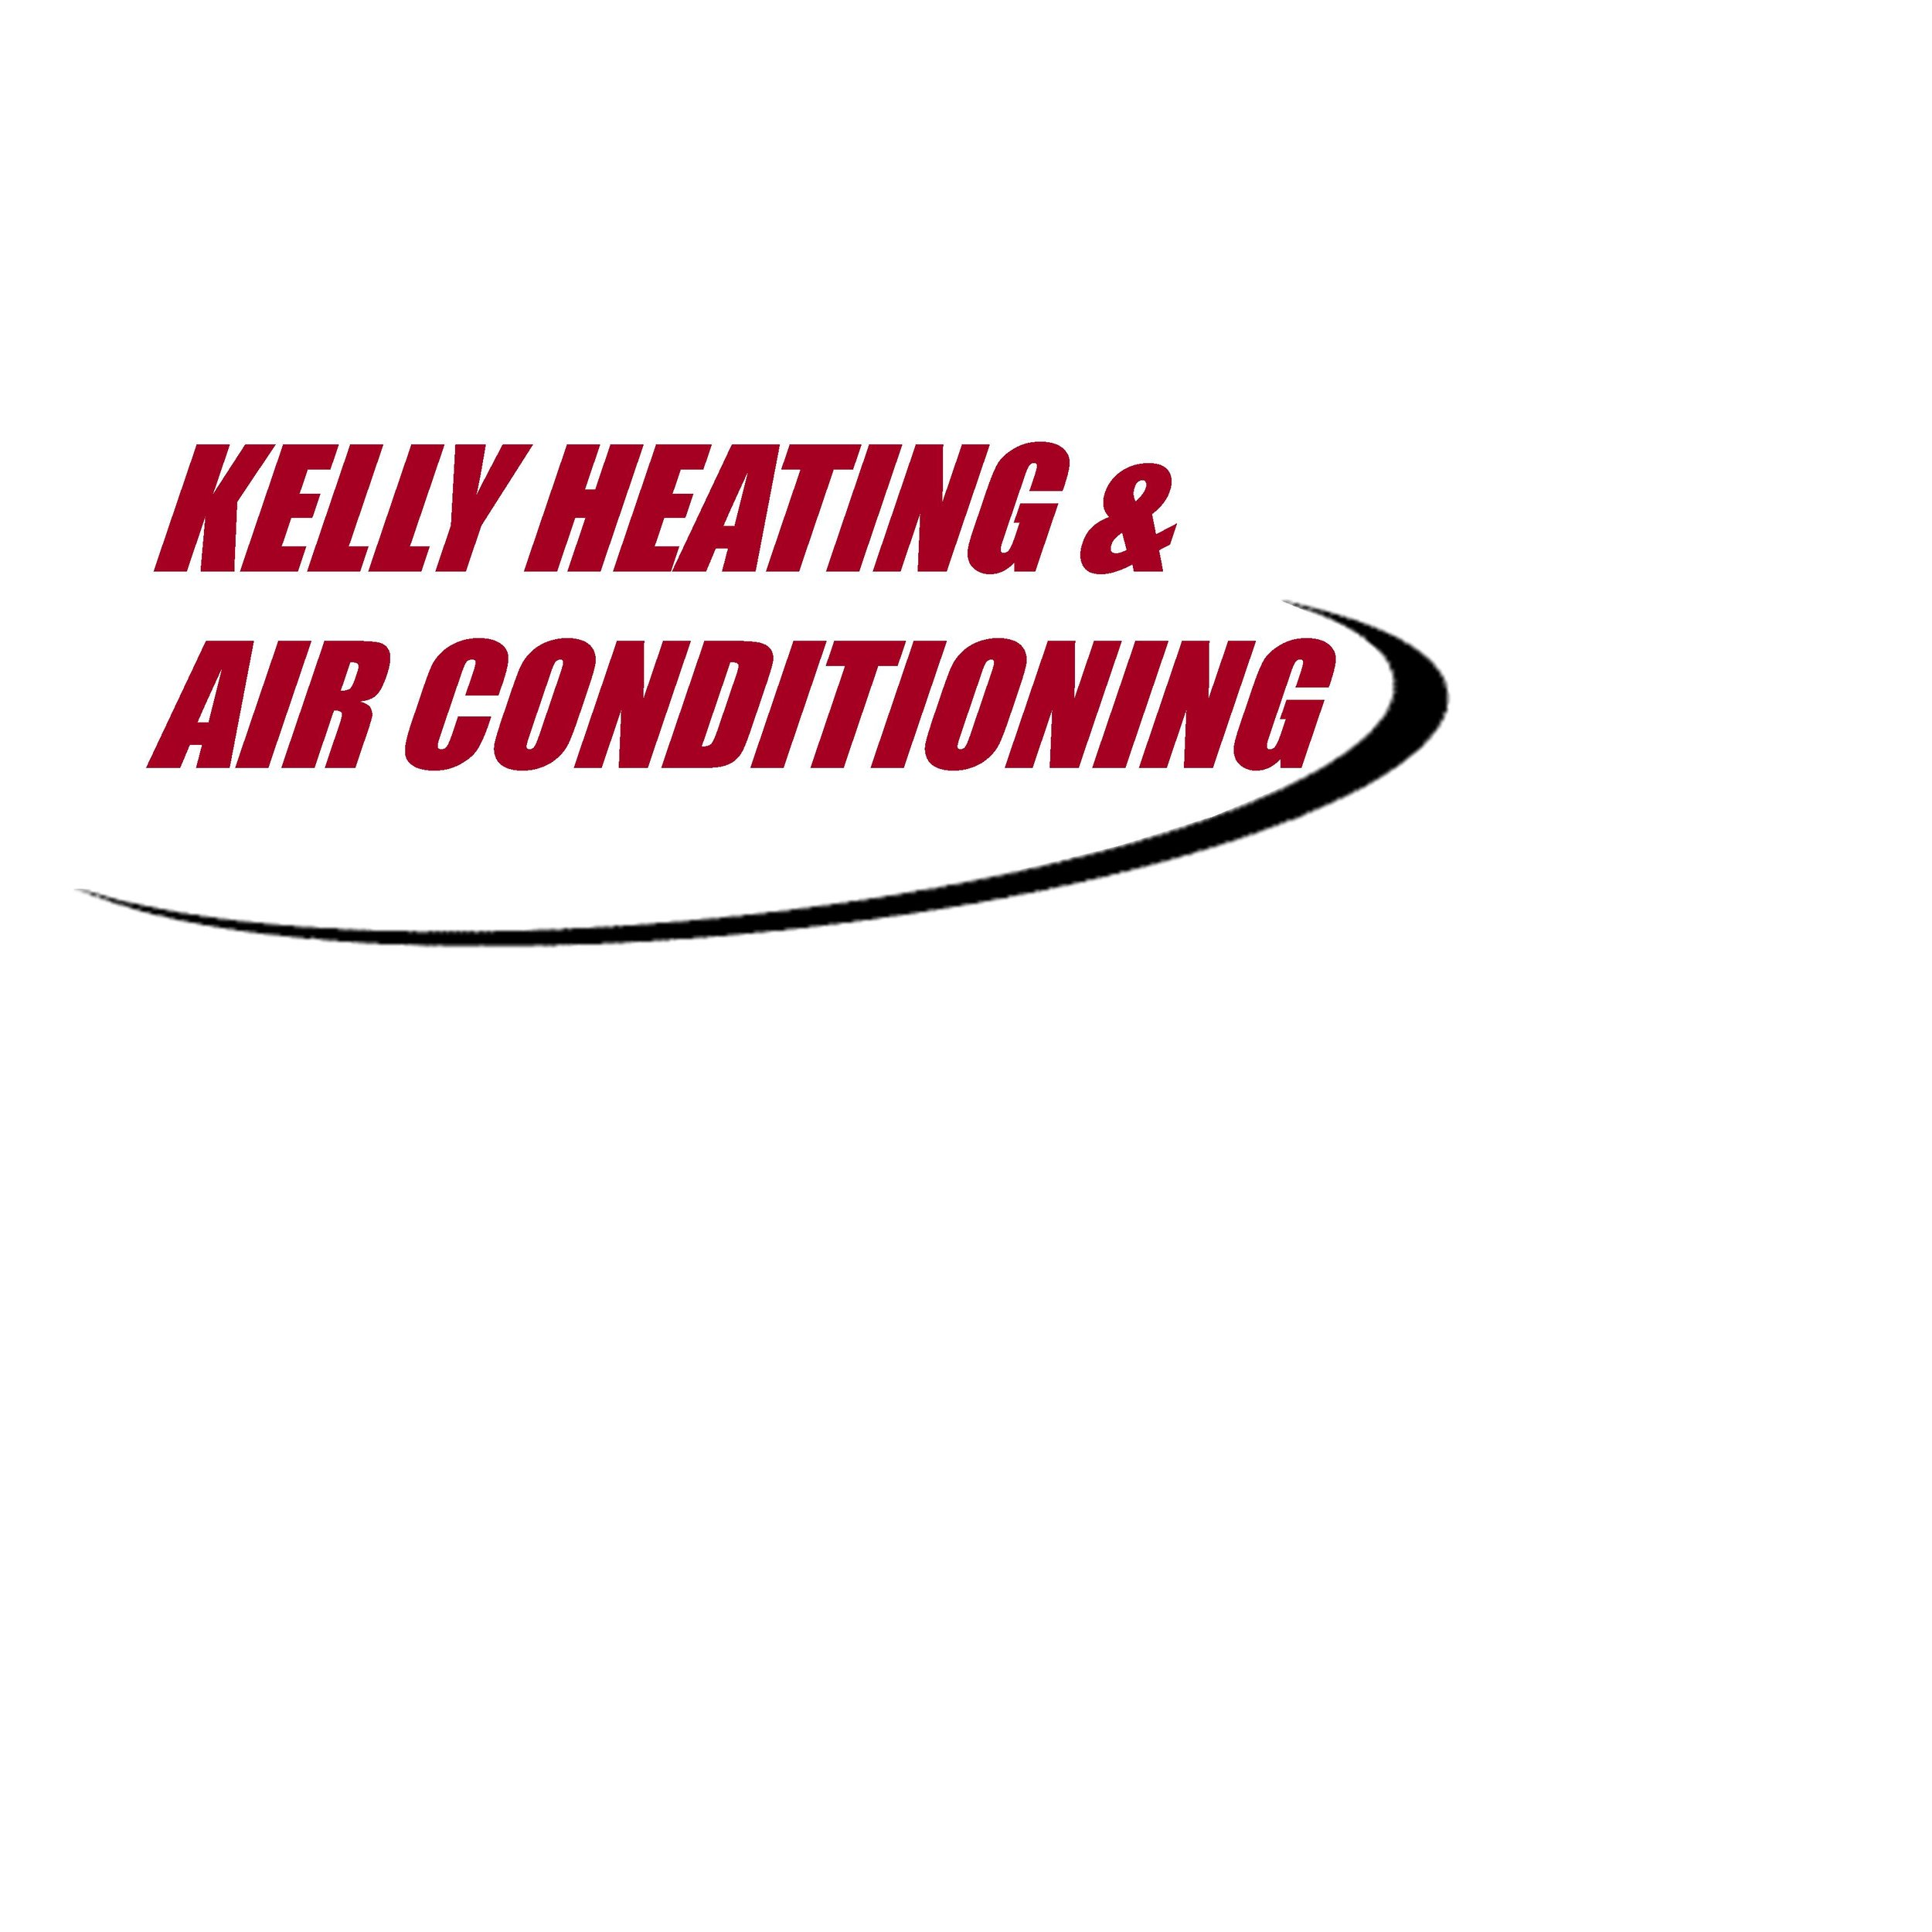 just kelly heating logo 2019.jpg